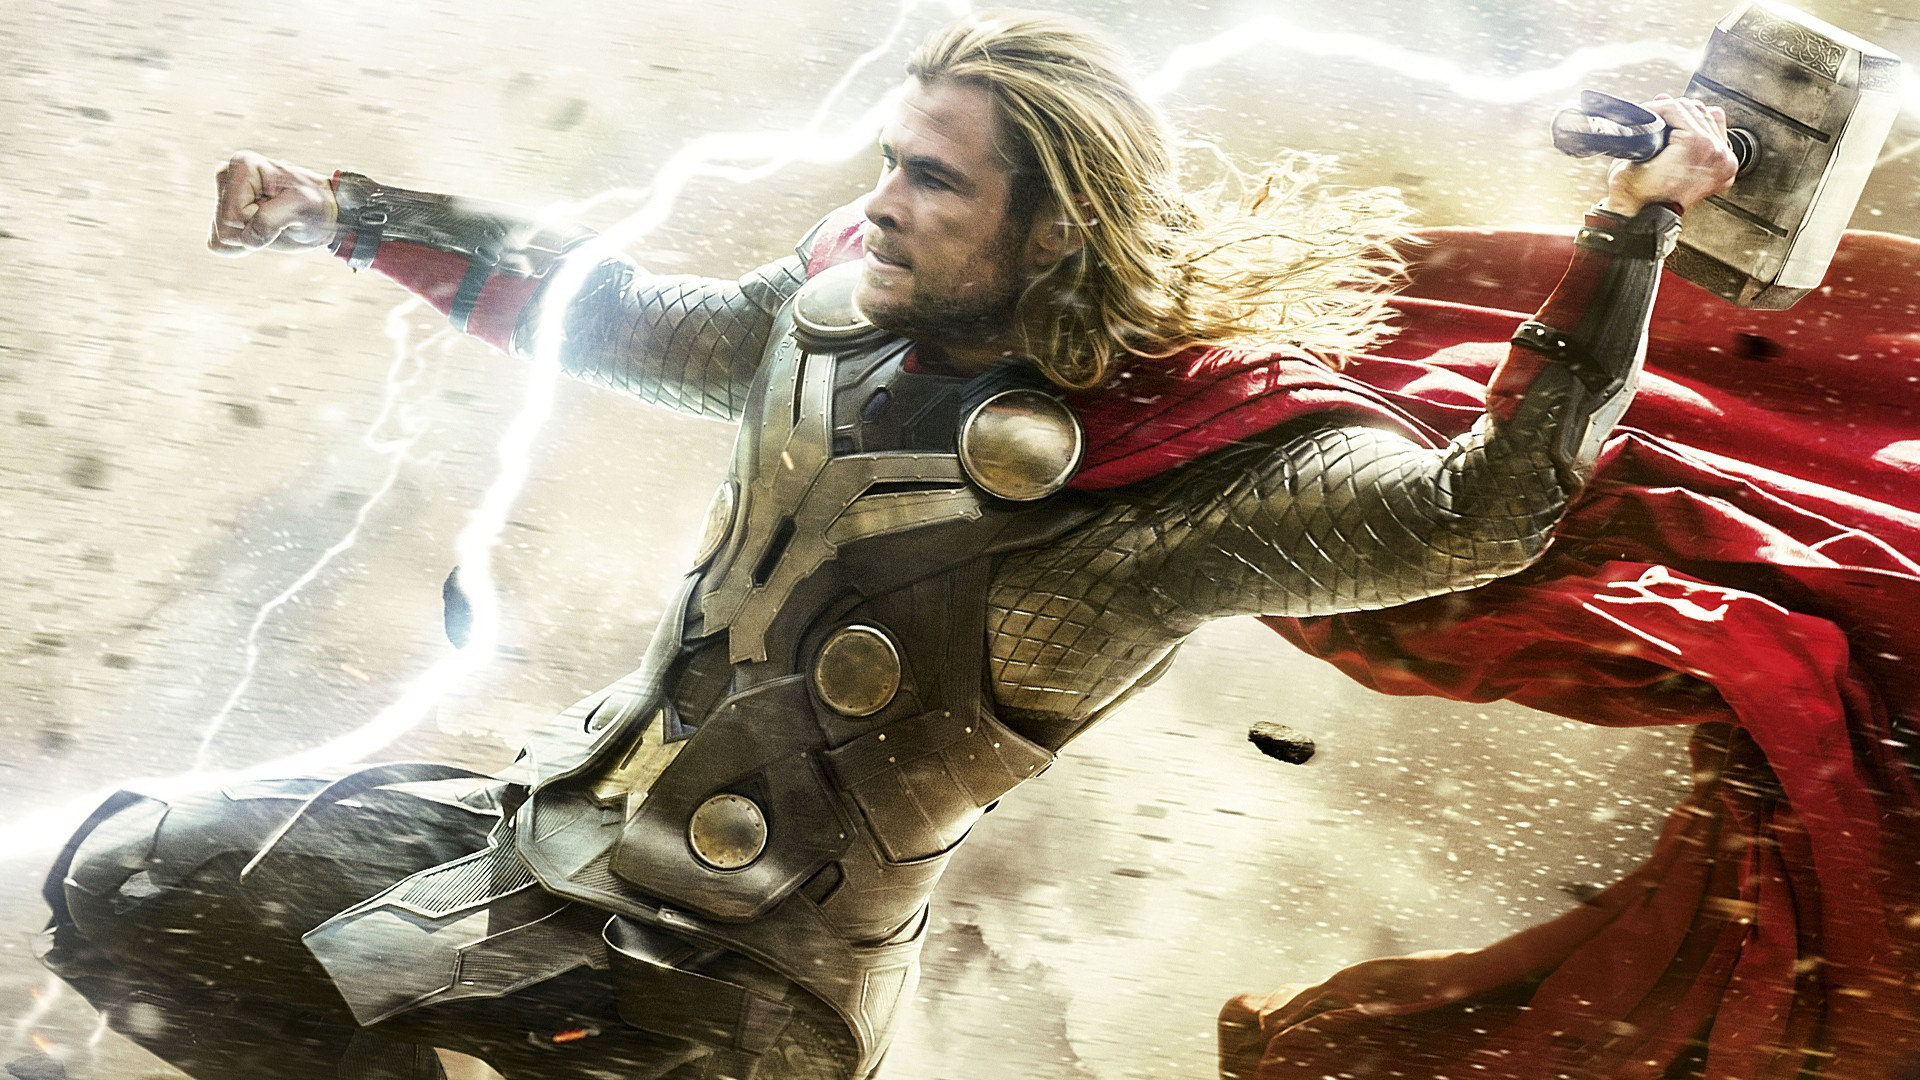 Thor The Dark World wallpaper 5